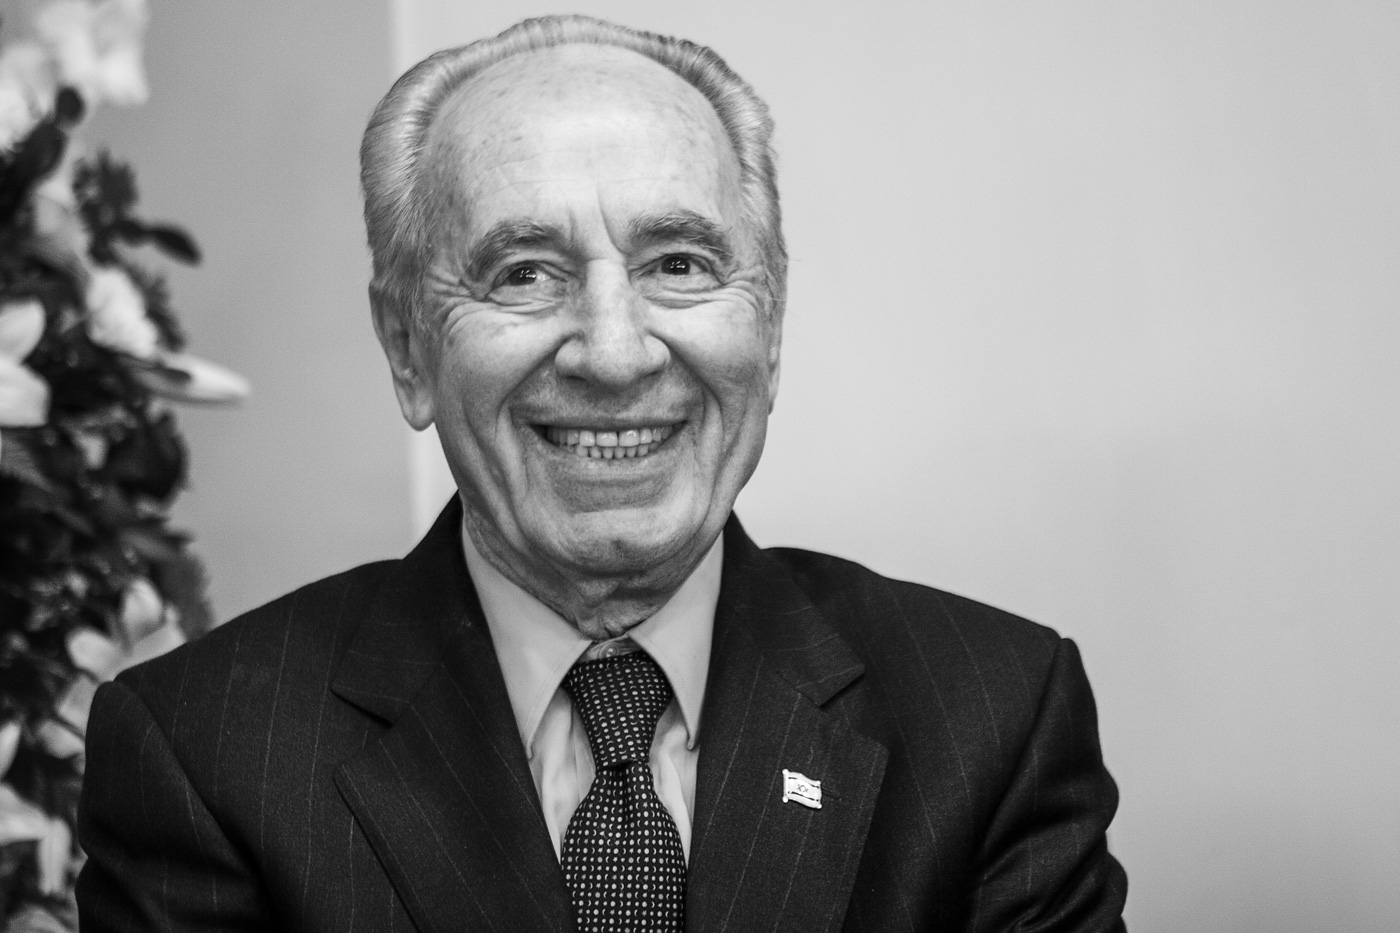 Shimon Peres, President of Israel, and Prime Minister of Israel, photojournalism